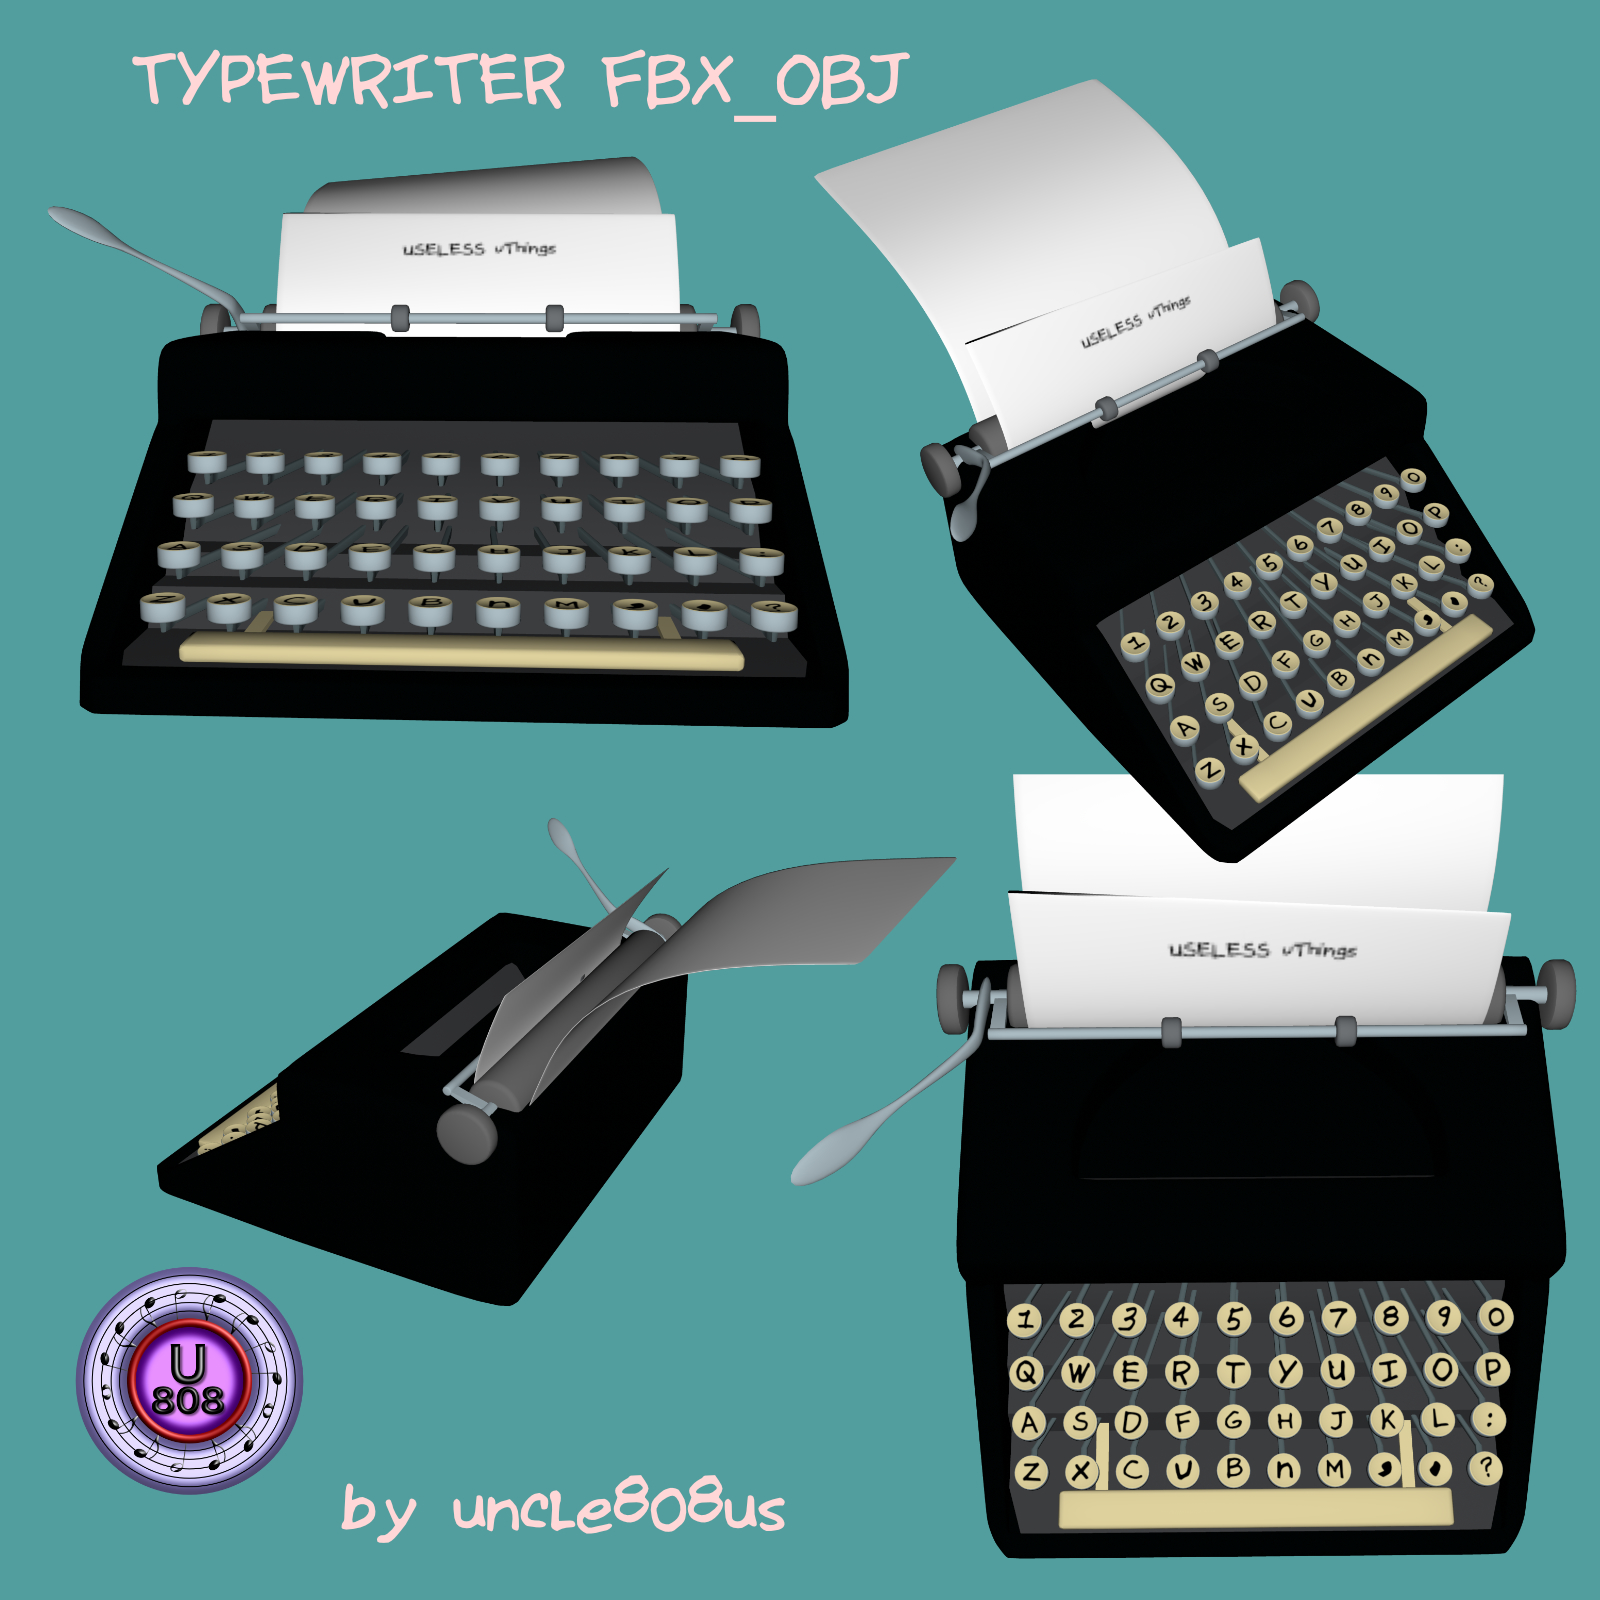 typewriter_old fbx obj 3d model fbx 264970